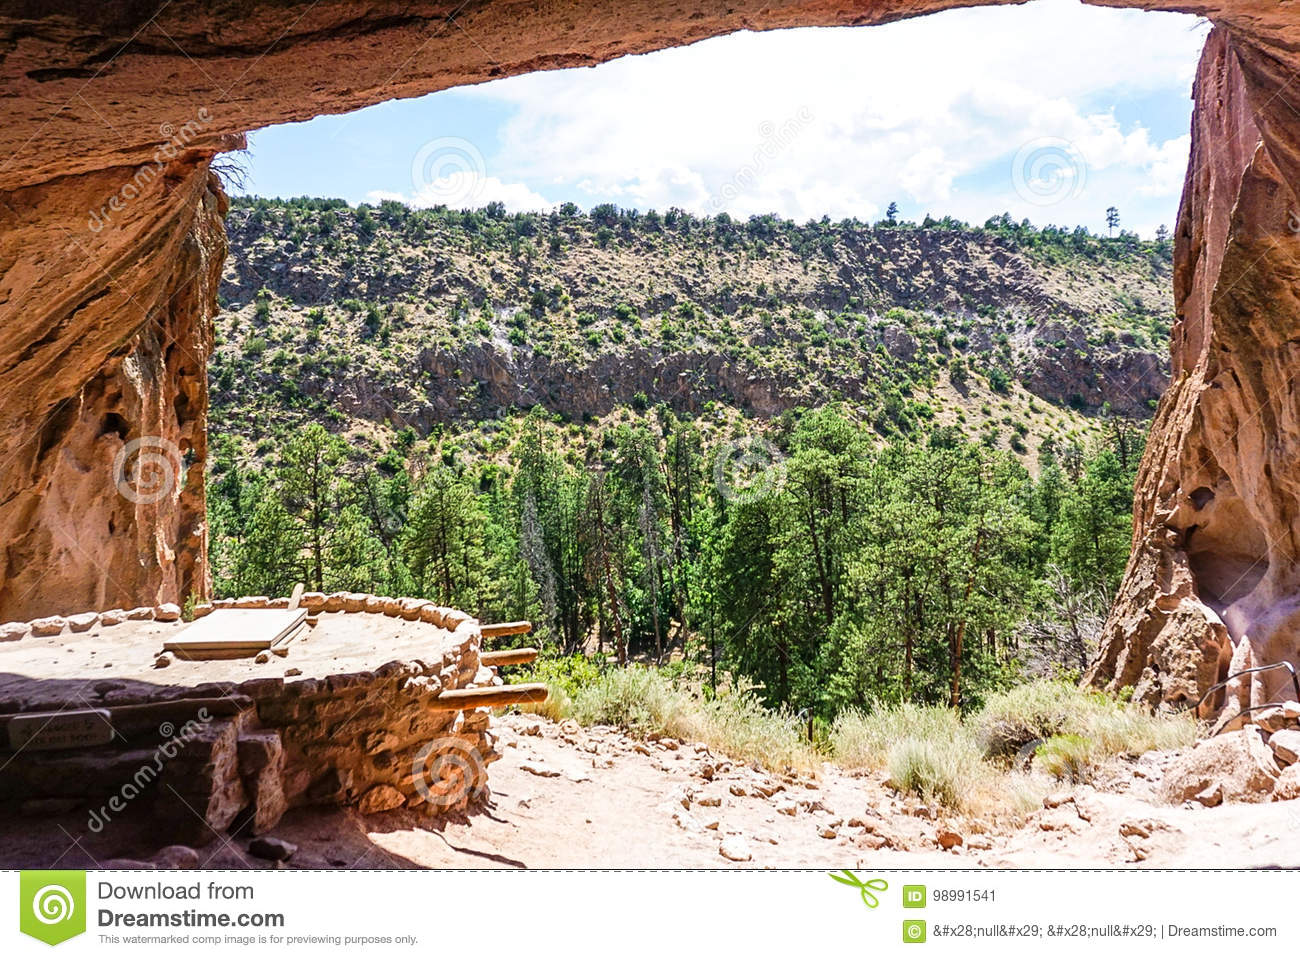 The Alcove House at Bandelier National Monument Park in Los Alamos,New Mexico